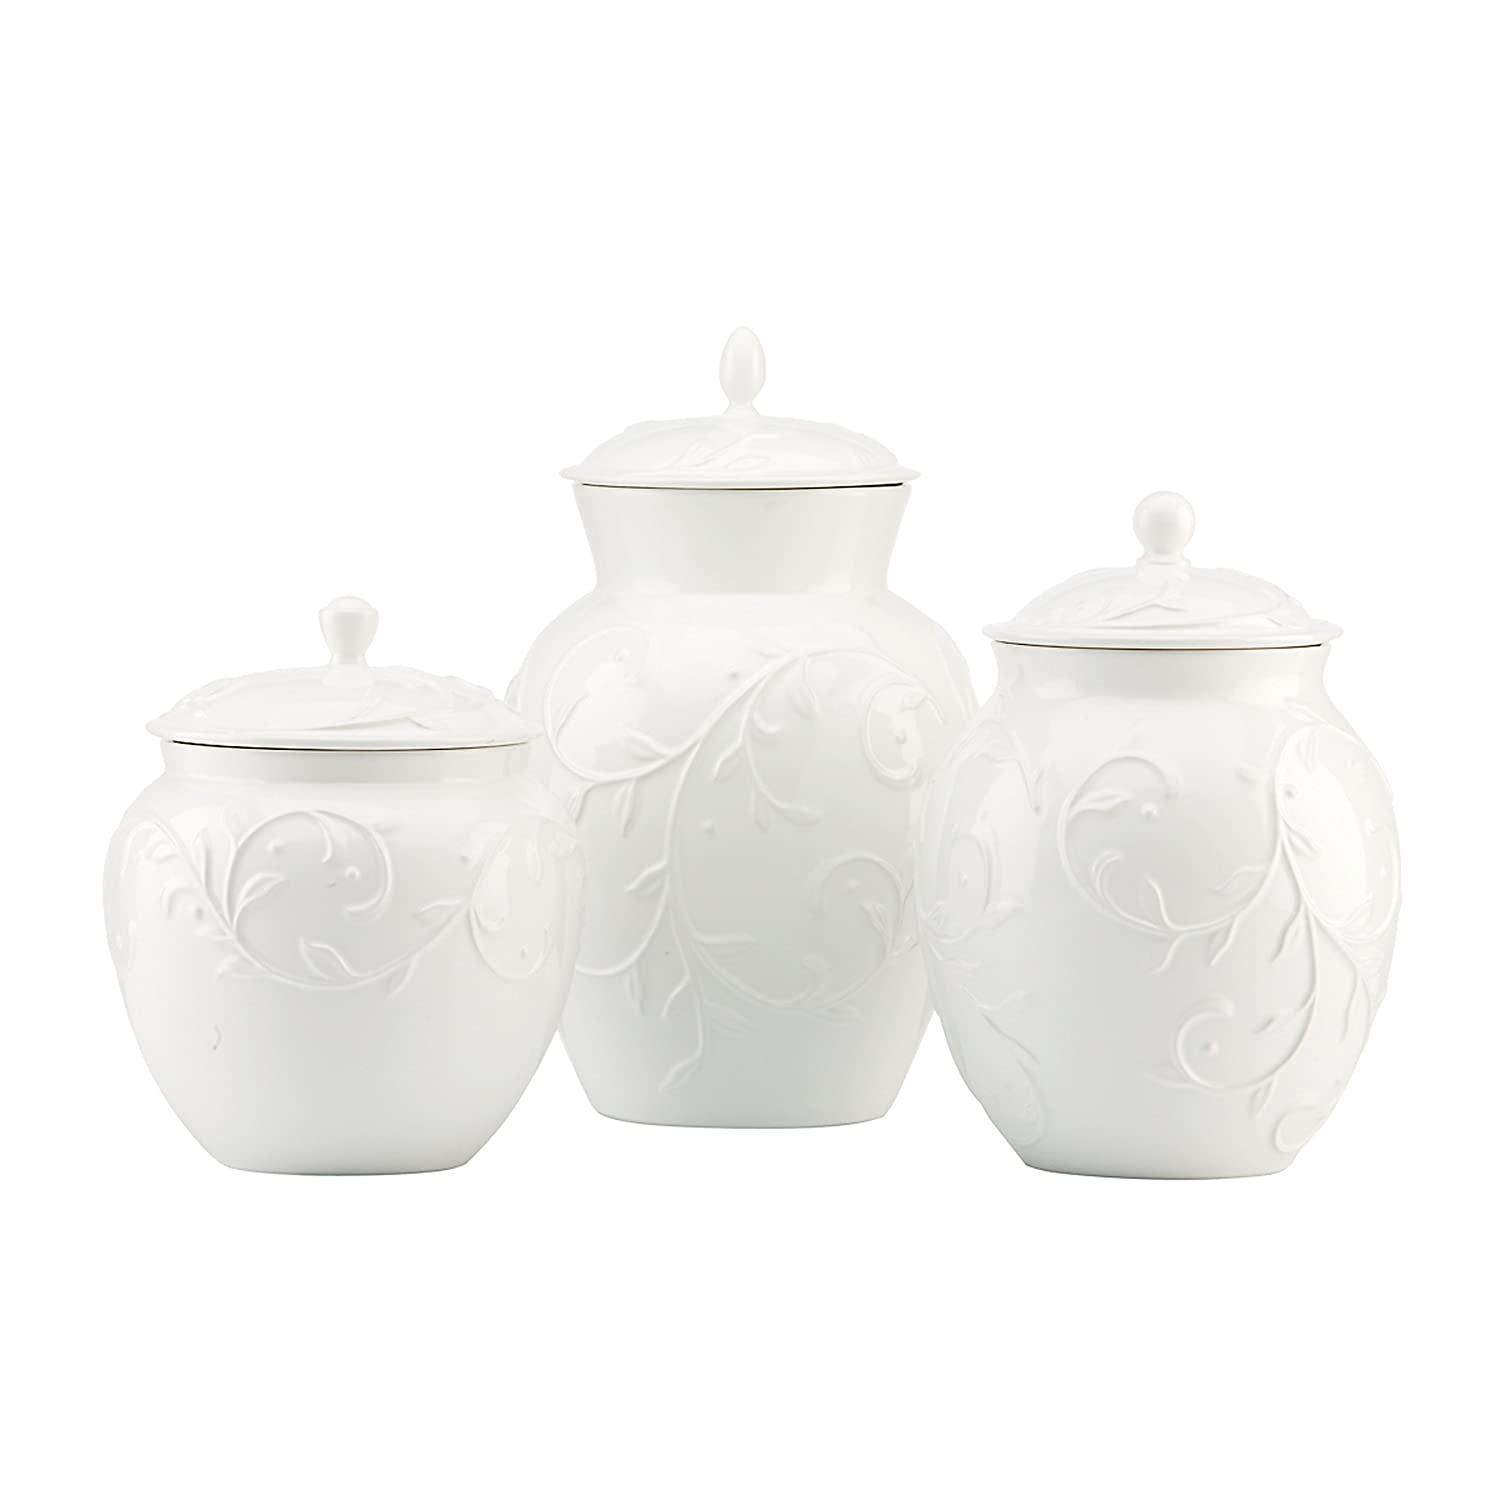 amazon com lenox opal innocence carved 3 piece canister set amazon com lenox opal innocence carved 3 piece canister set kitchen storage and organization product sets kitchen dining